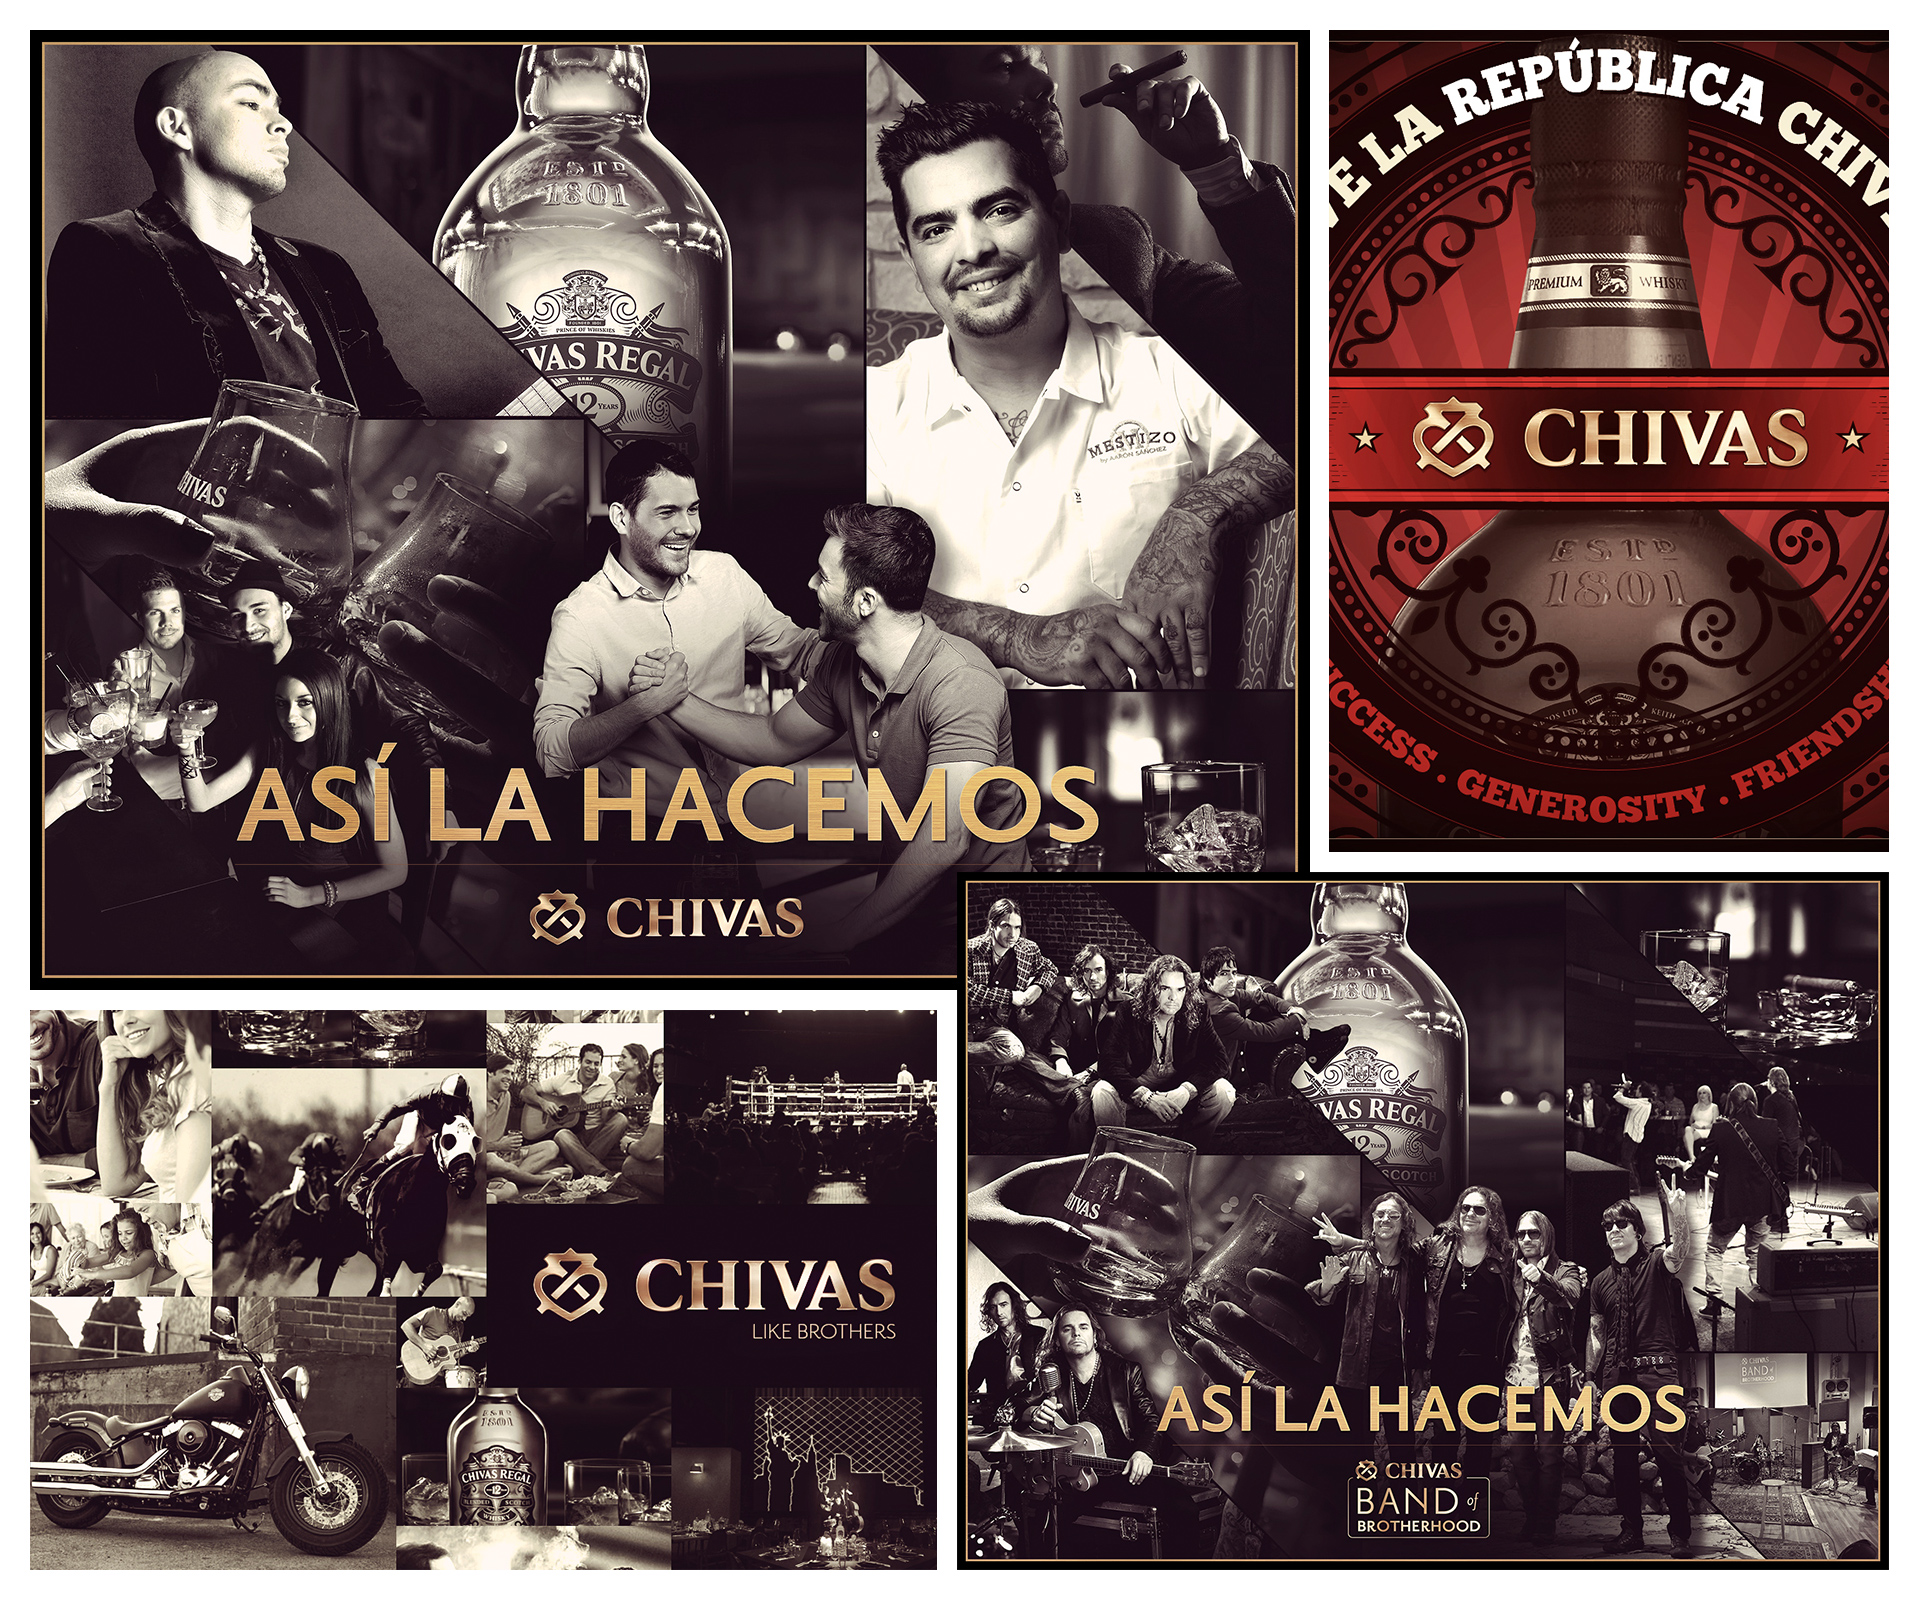 Chivas-Republica-2